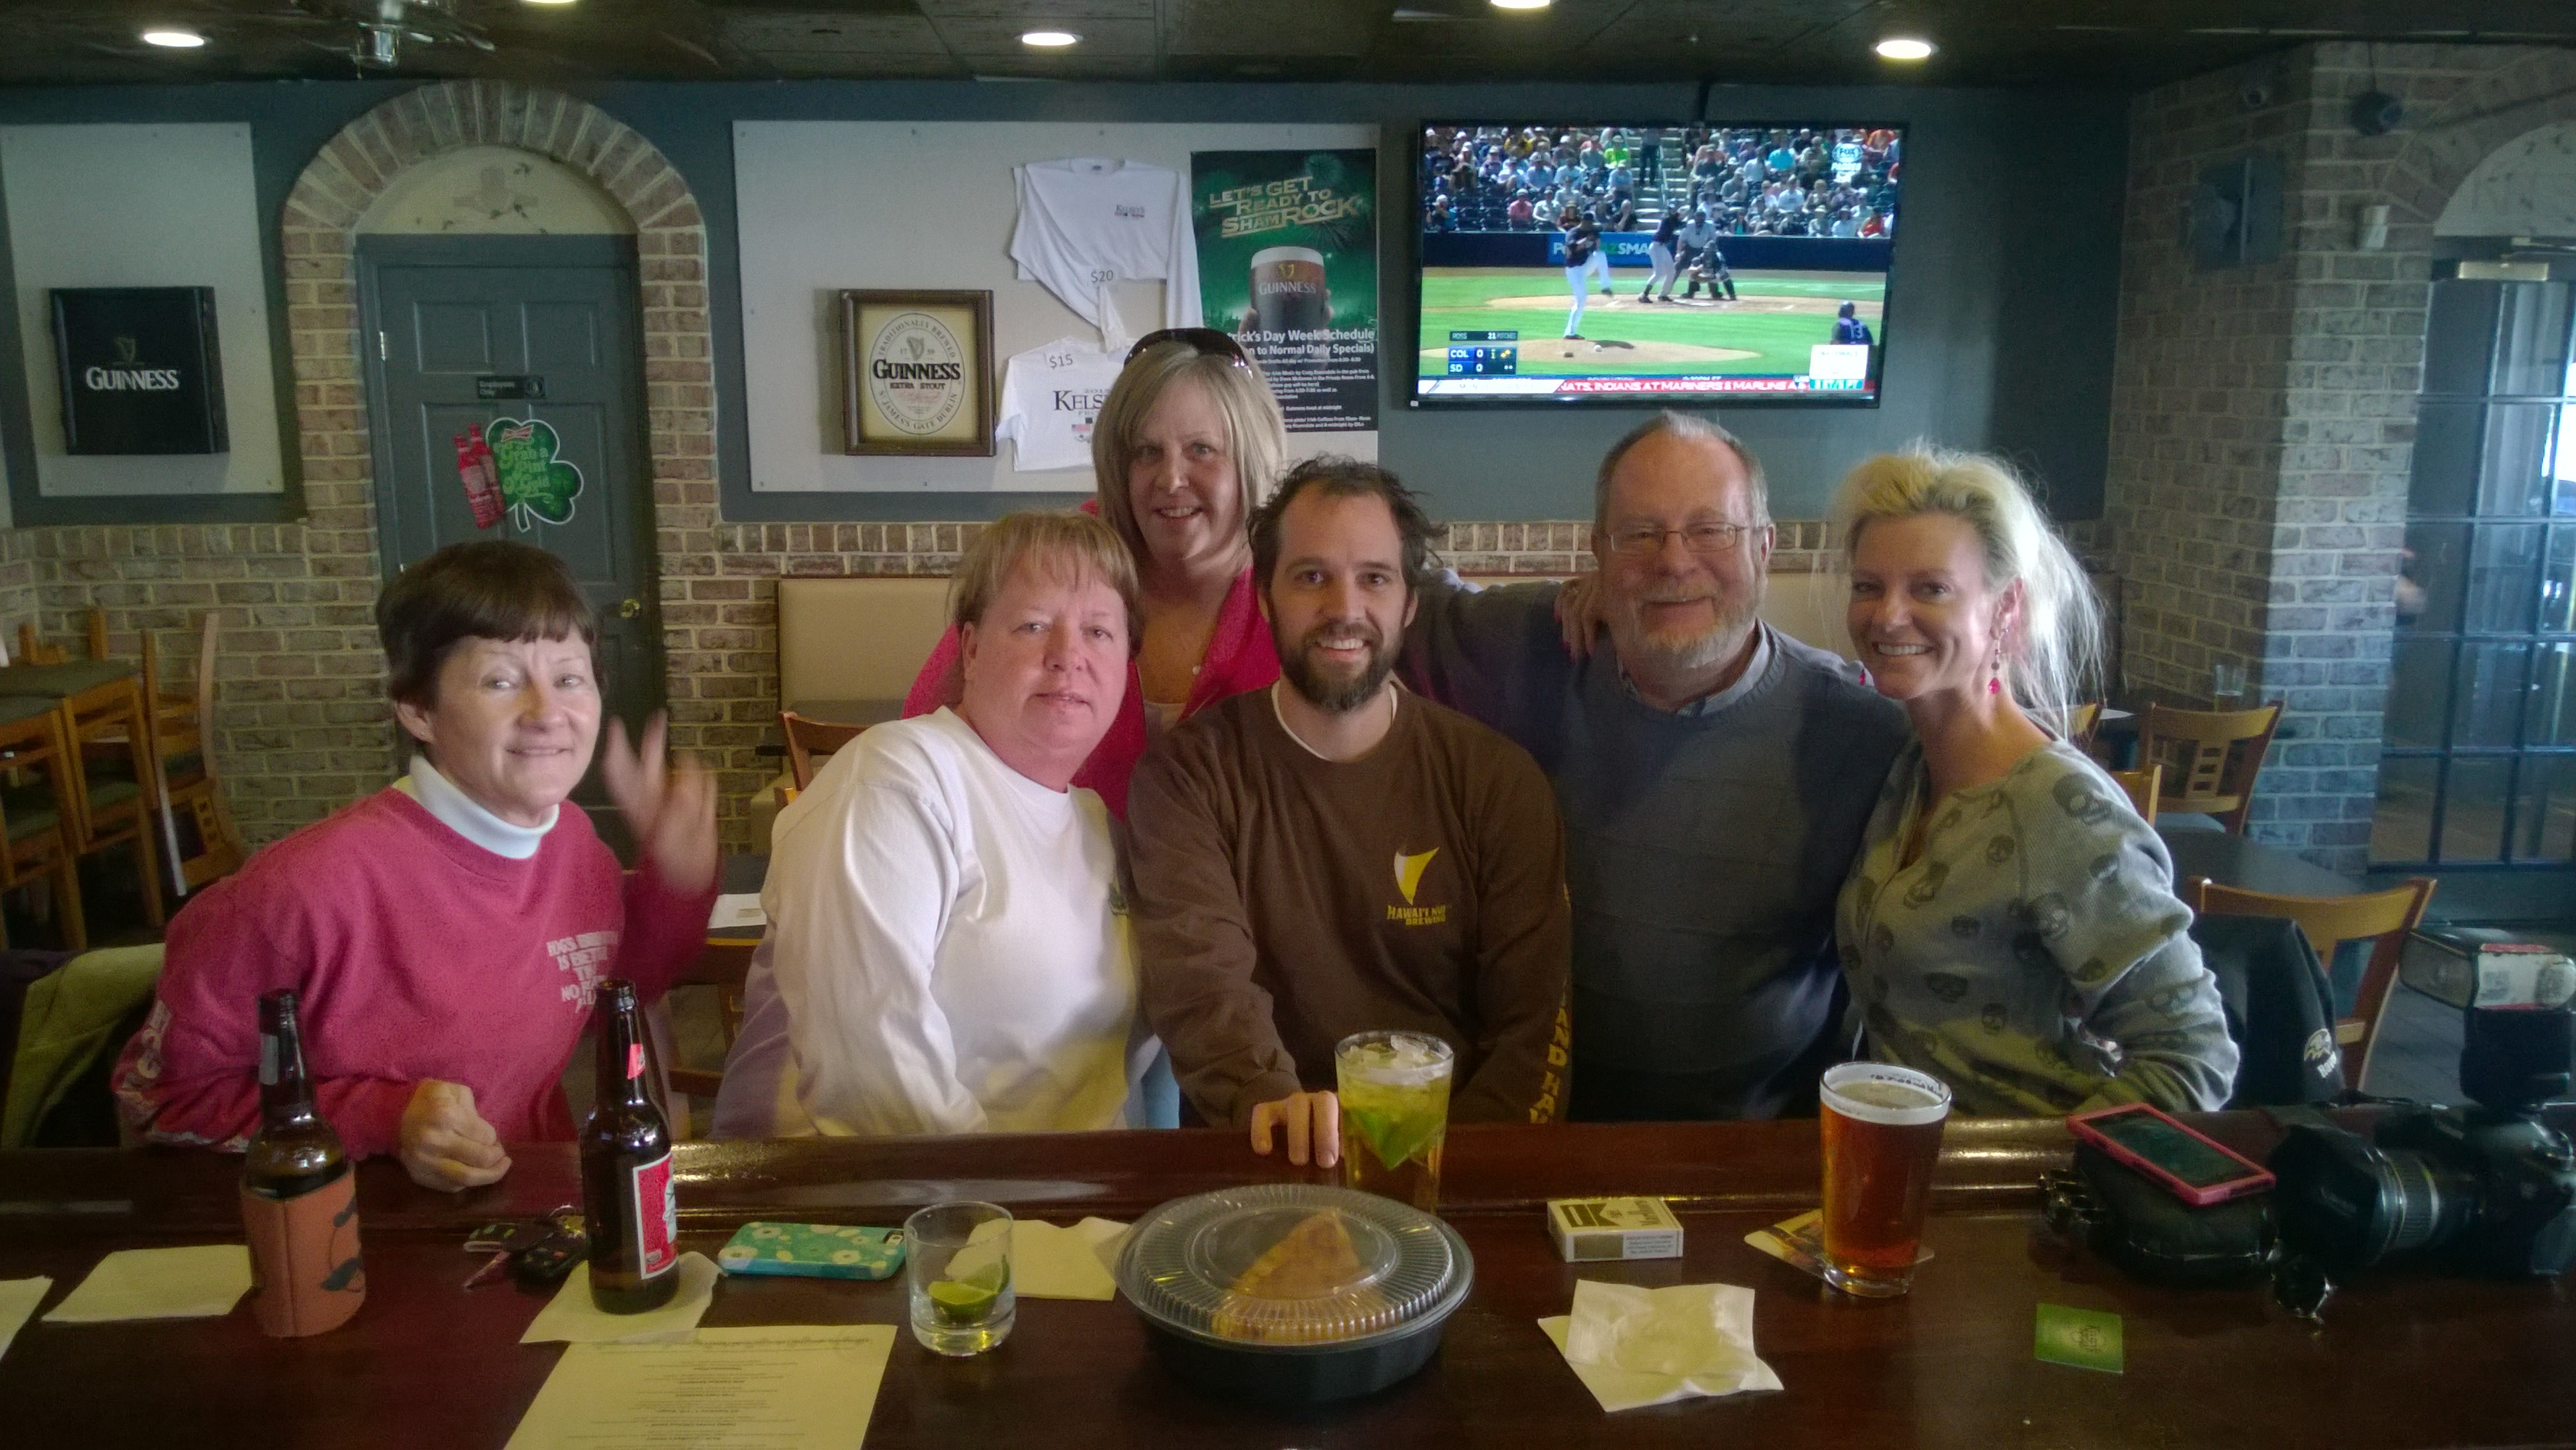 A football-less Sunday at Kelsey's